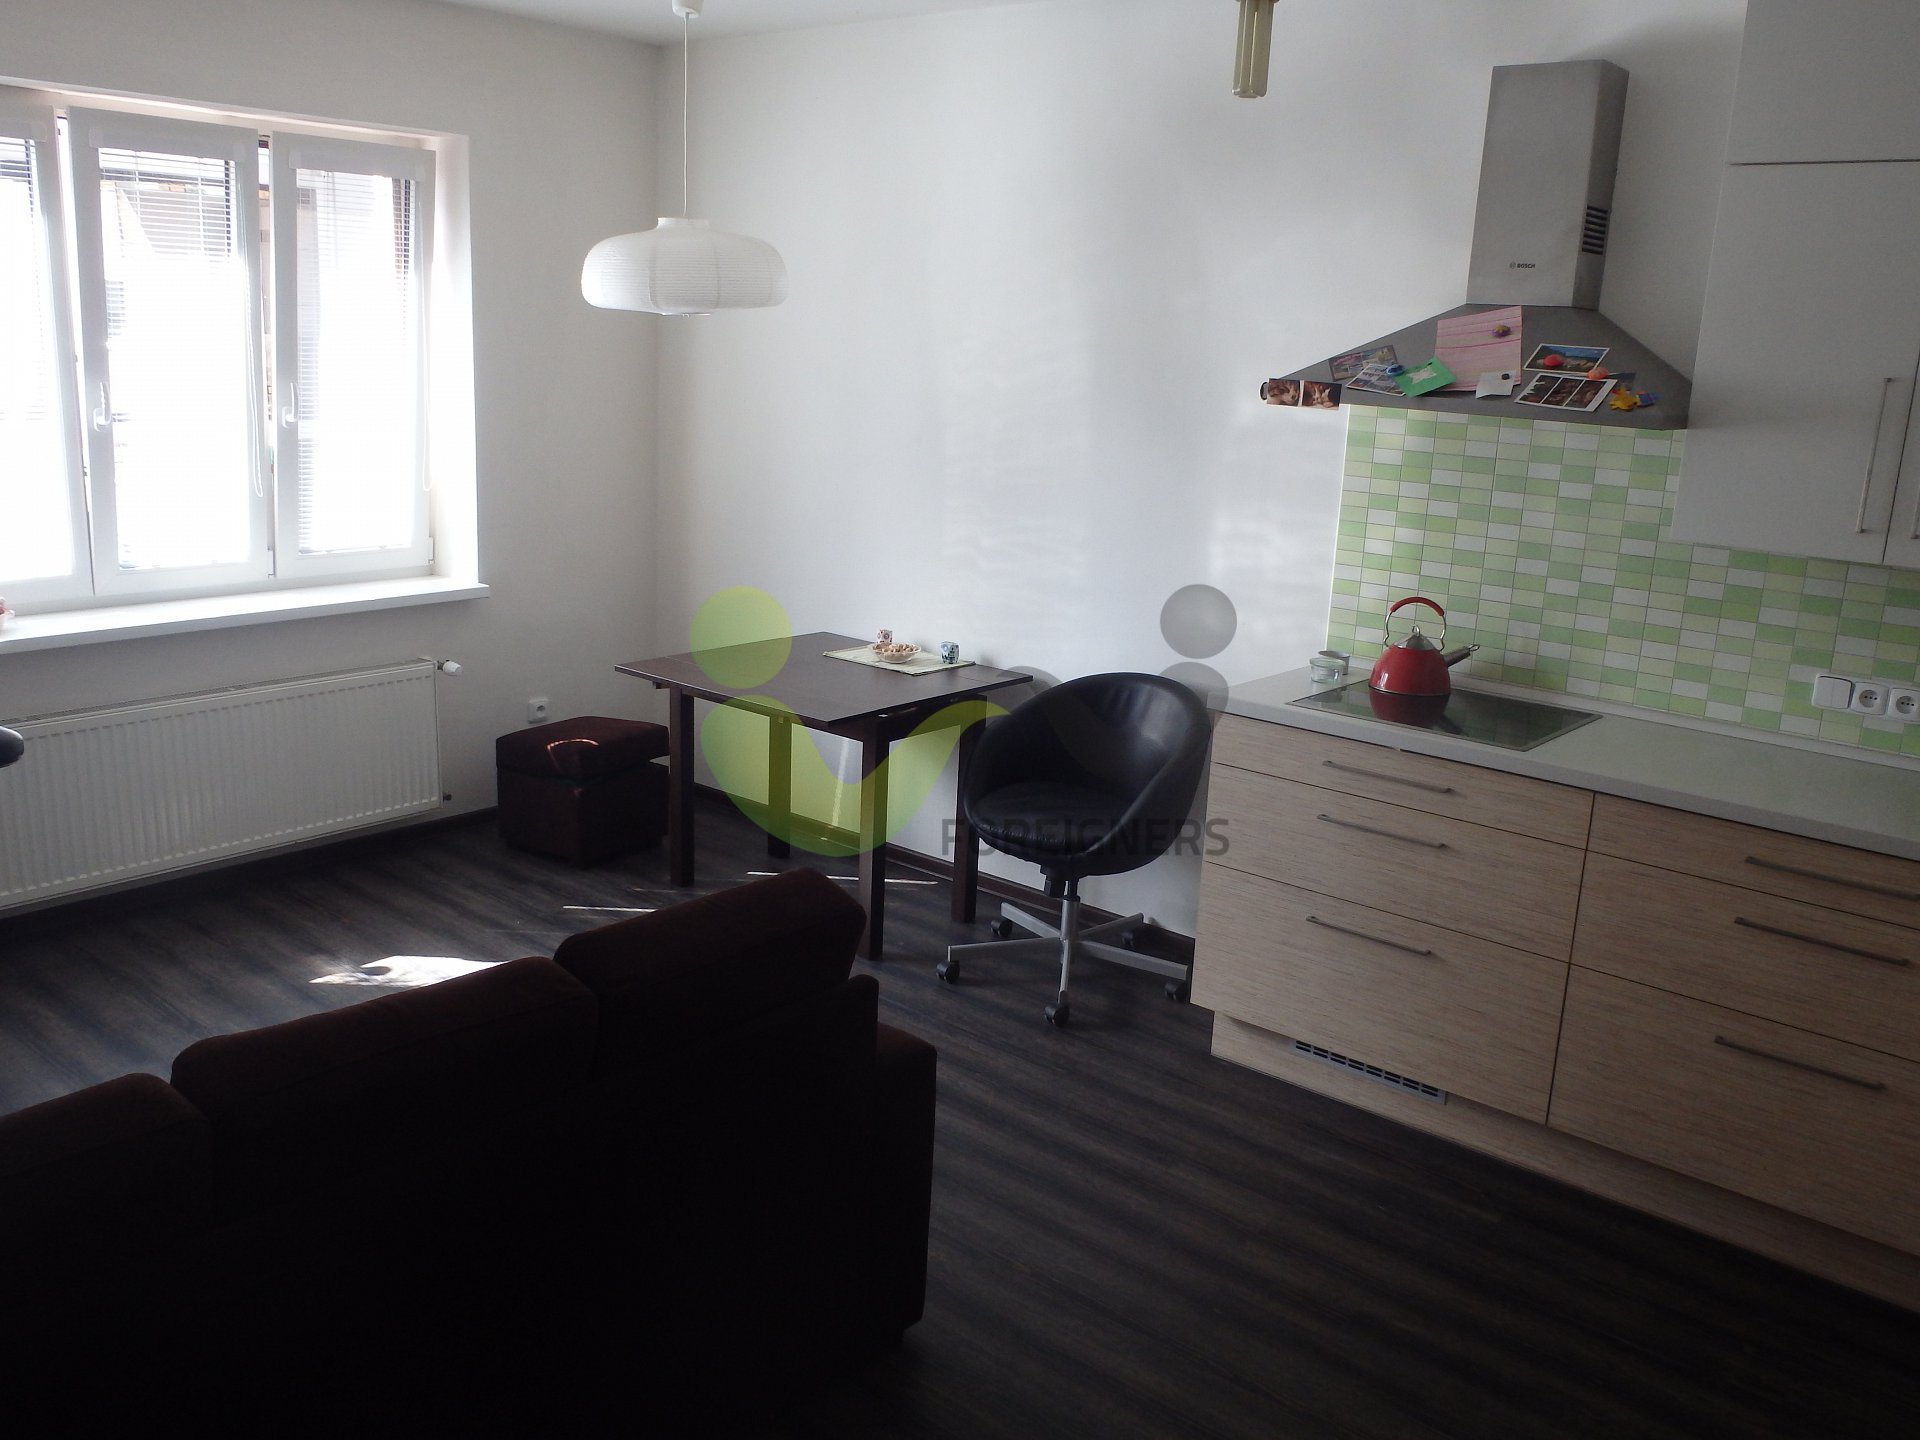 2 bedroom 3 kk apartment for rent in hradec kr lov - 2 and 3 bedroom apartments for rent ...